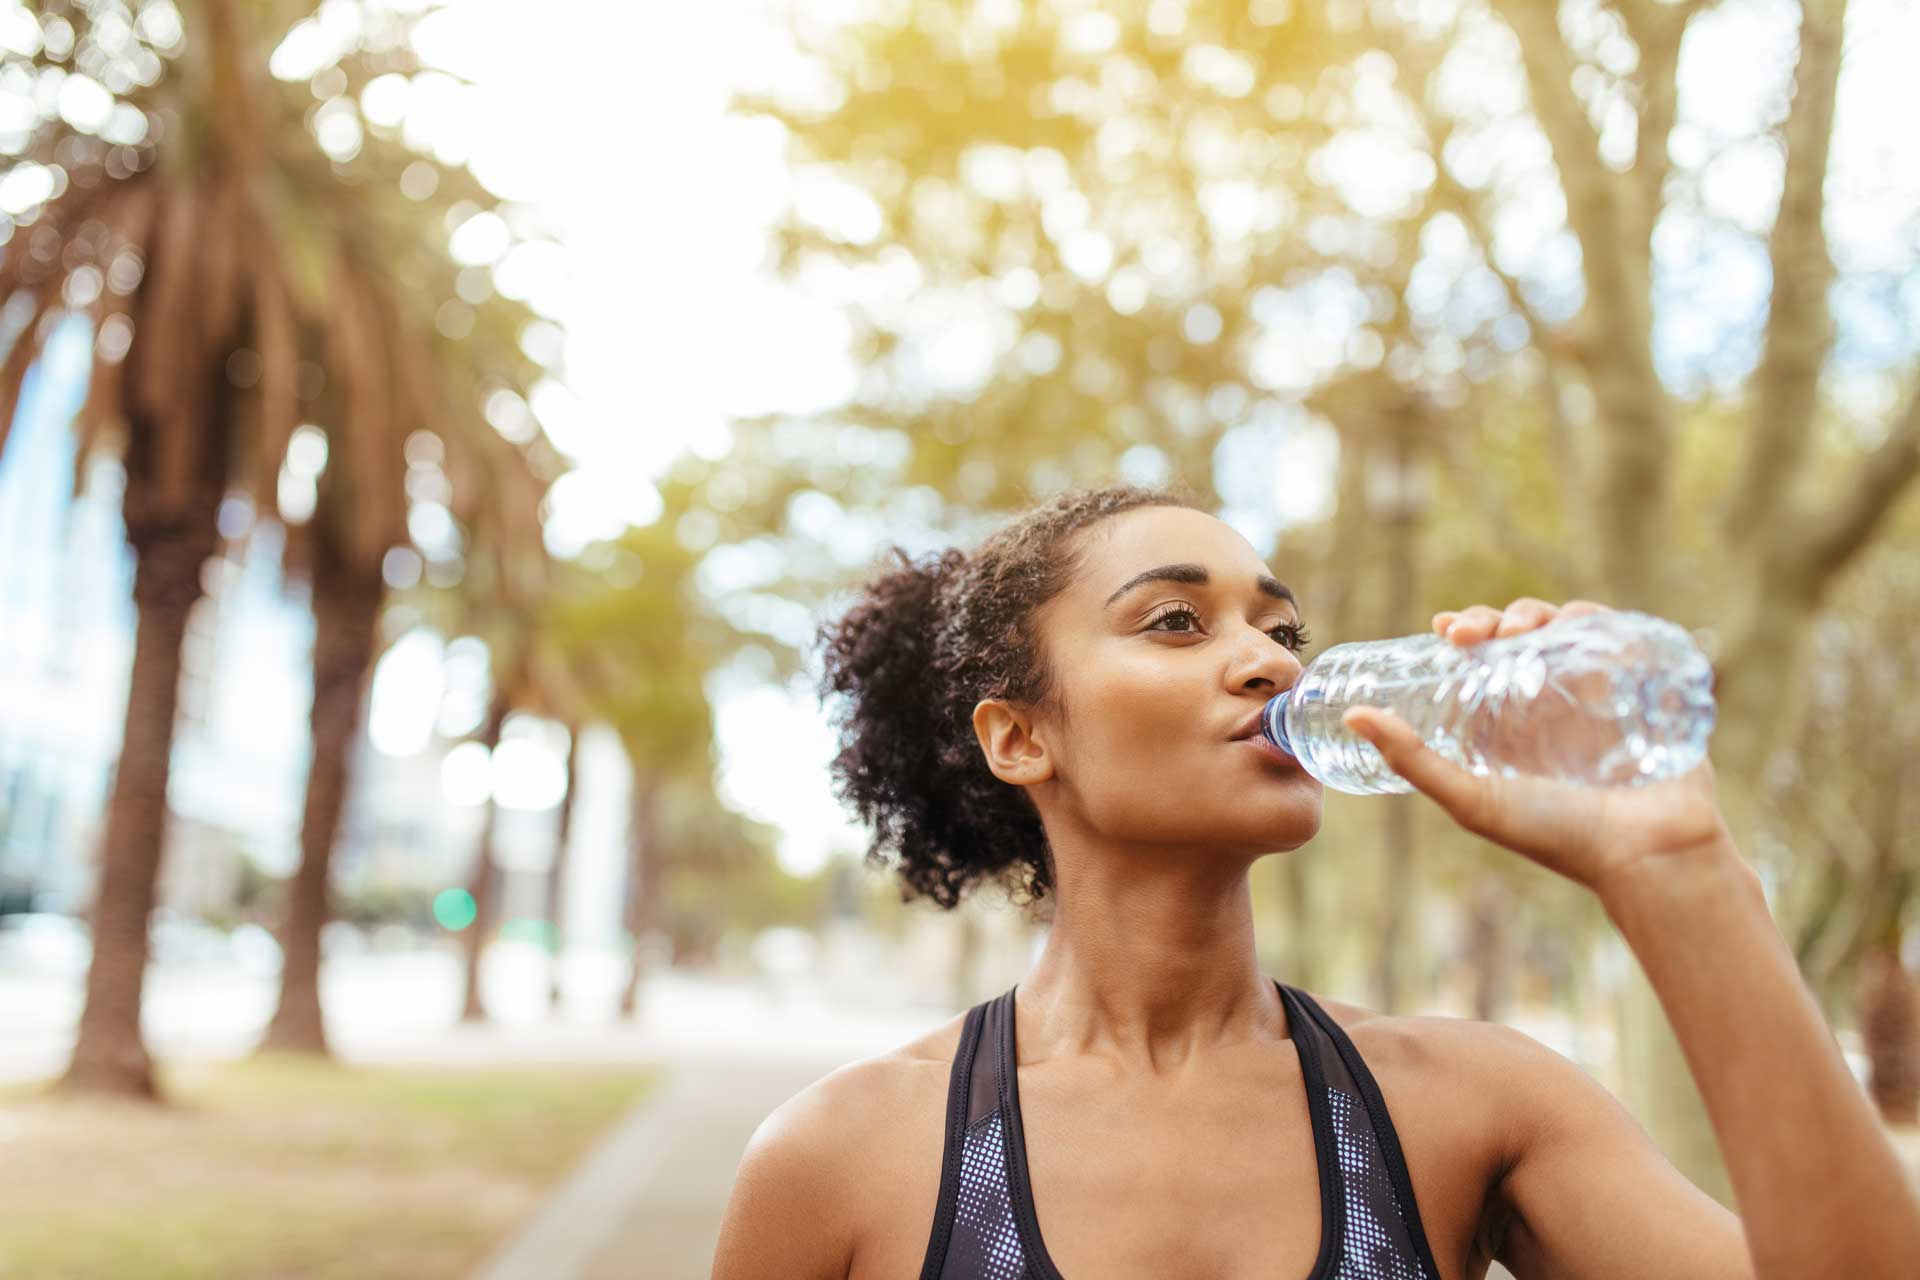 femme qui s'hydrate pendant son footing